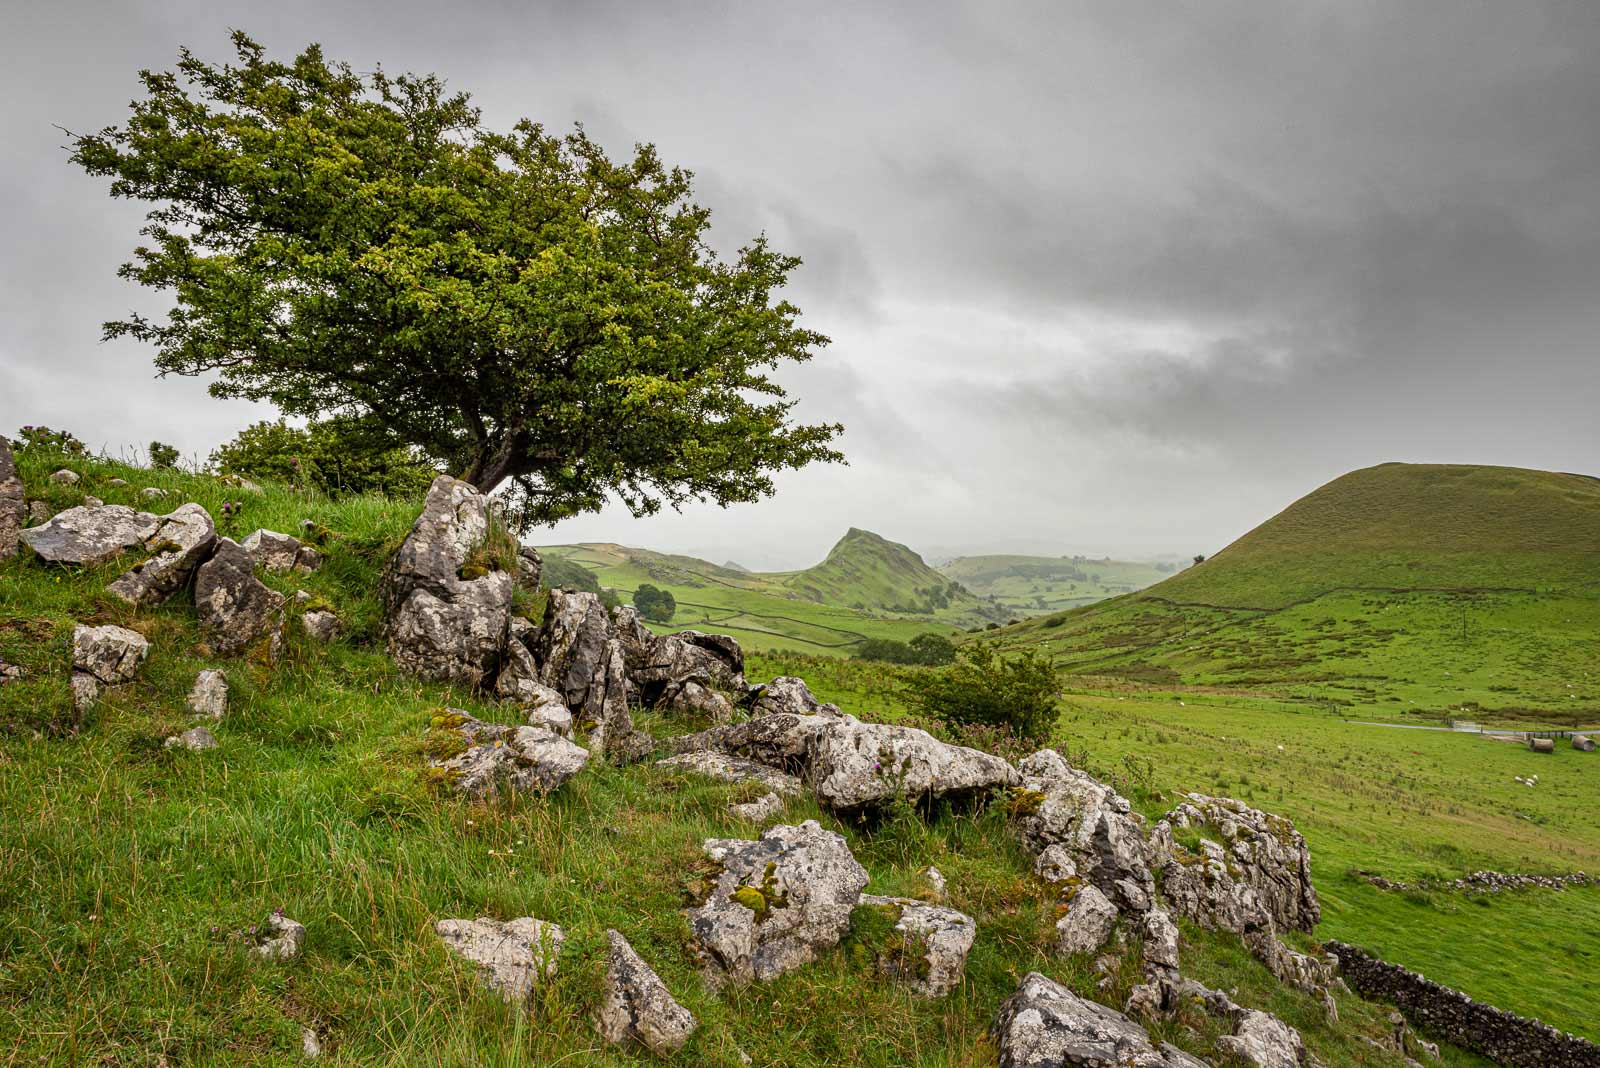 Landscape near Chrome Hill, Derbyshire